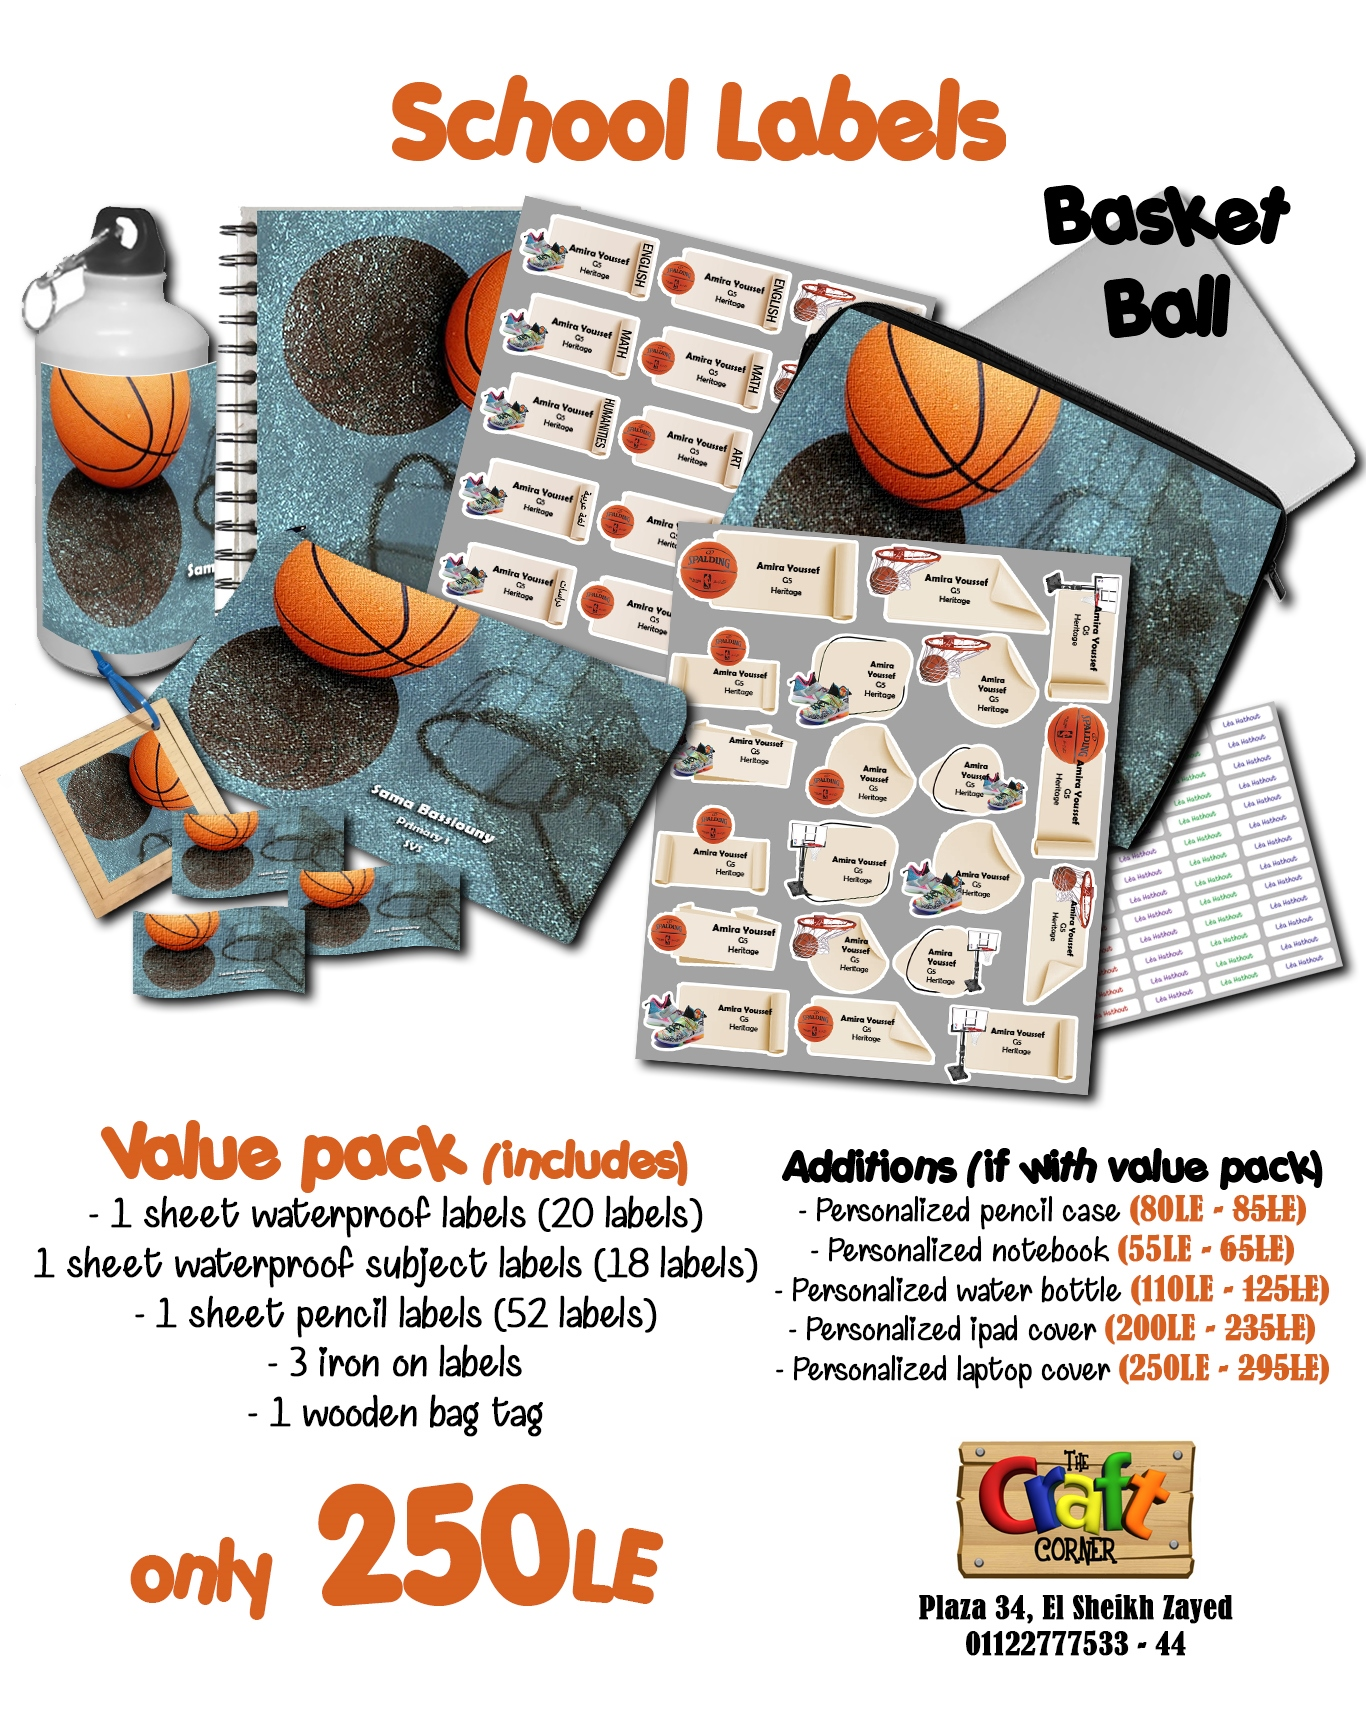 Basket ball ad